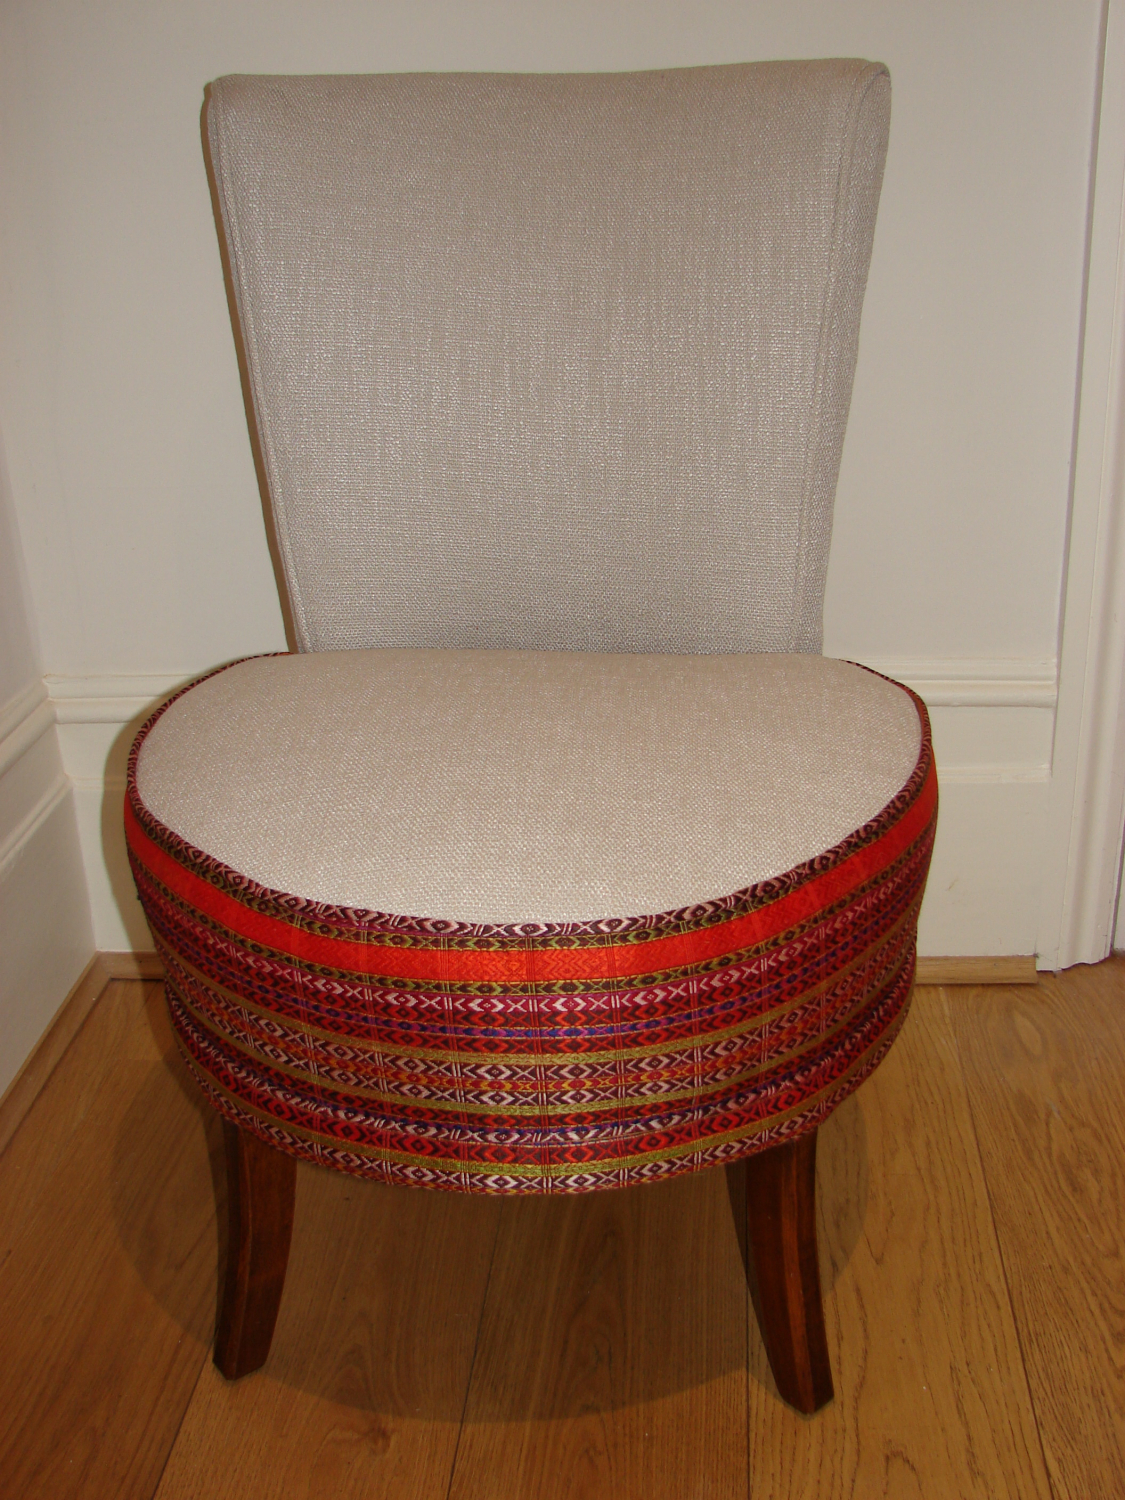 Nursing/ fireside chair with vintage panel from Pakistan